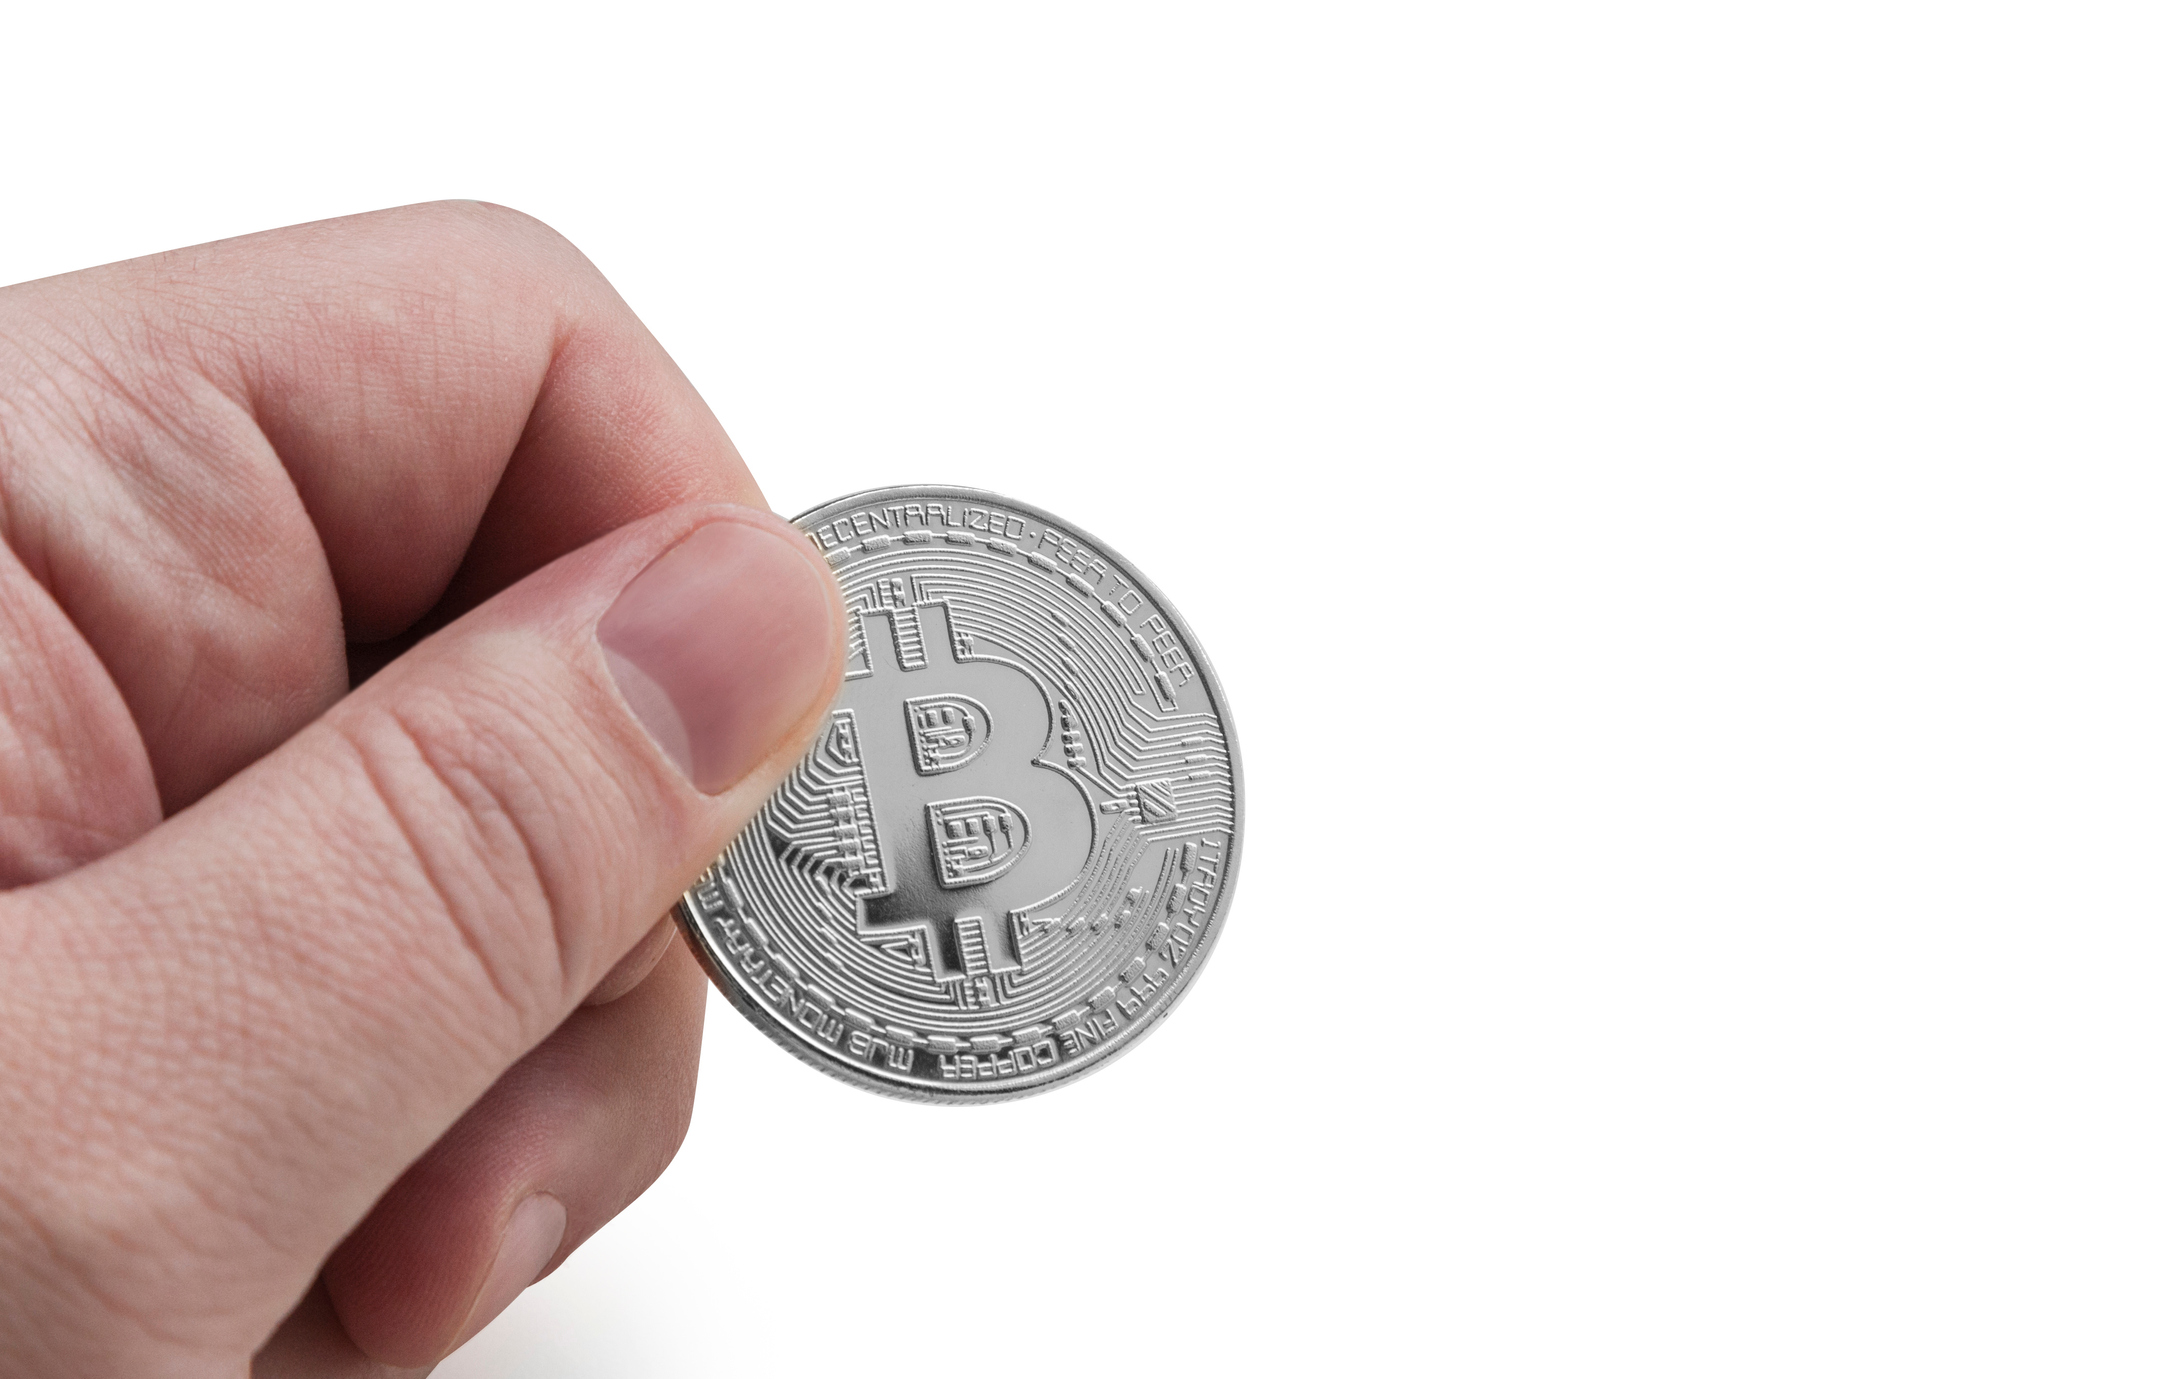 where to buy all crypto coins